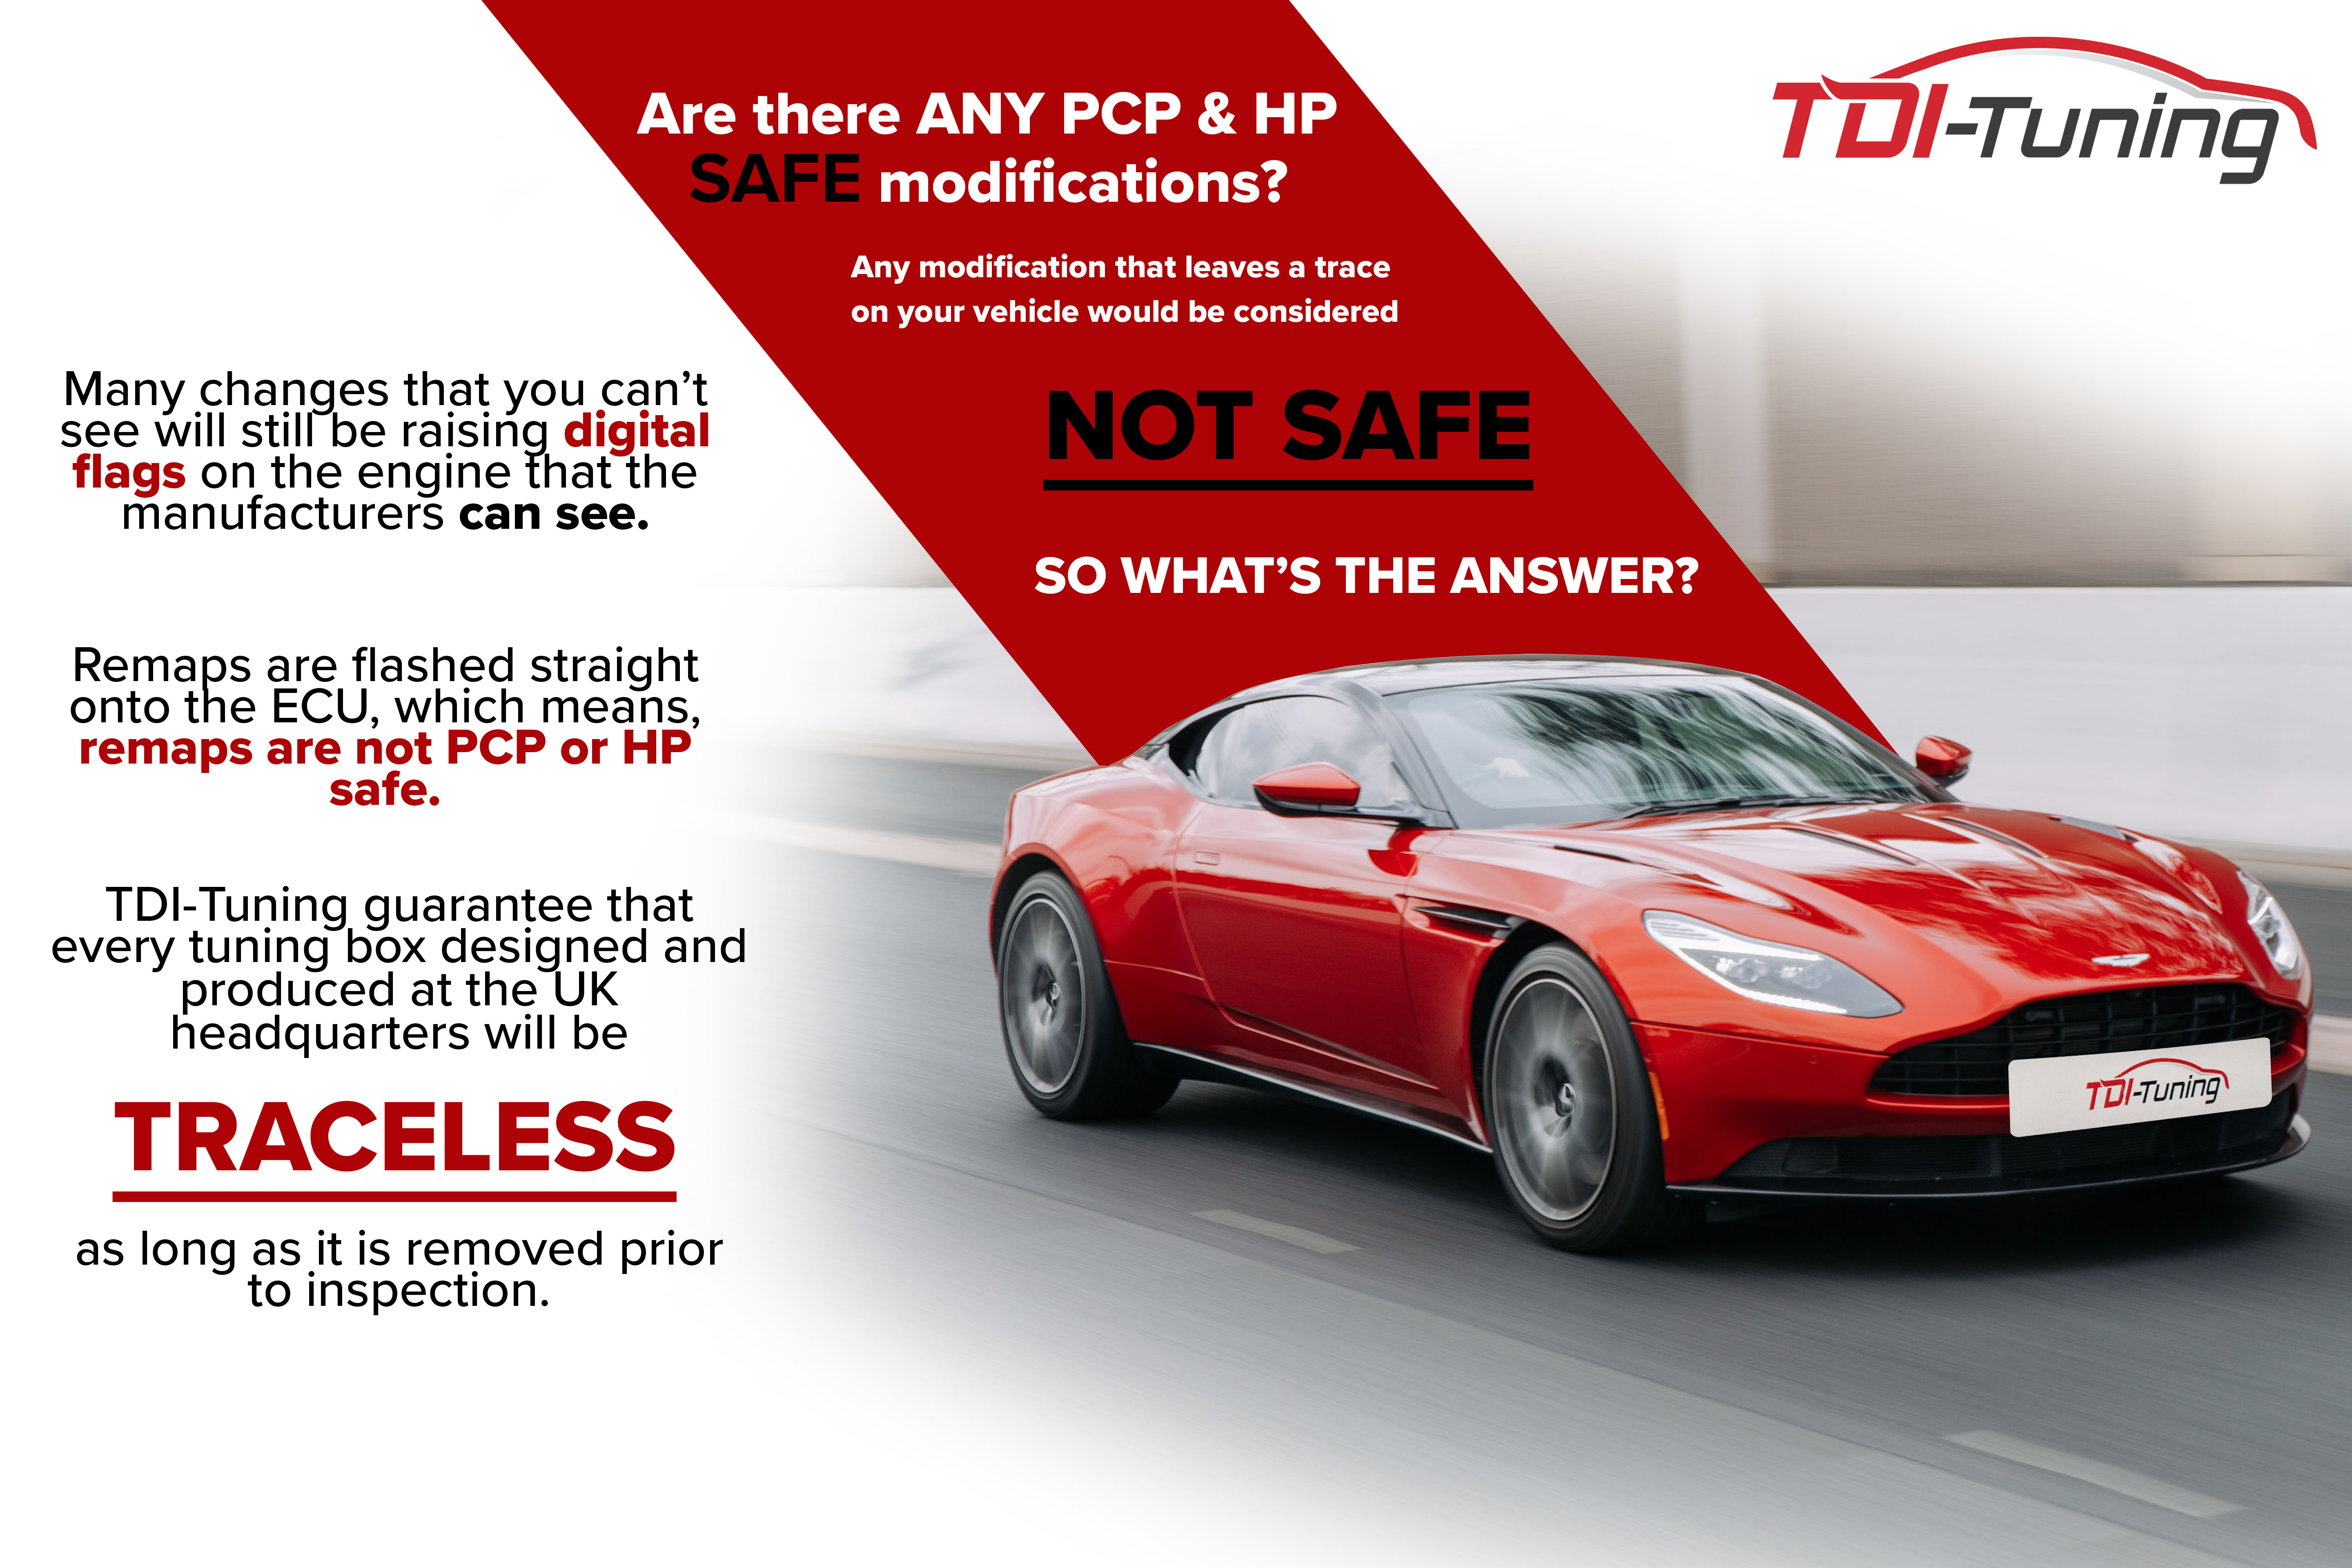 modifying a car on a PCP agreement